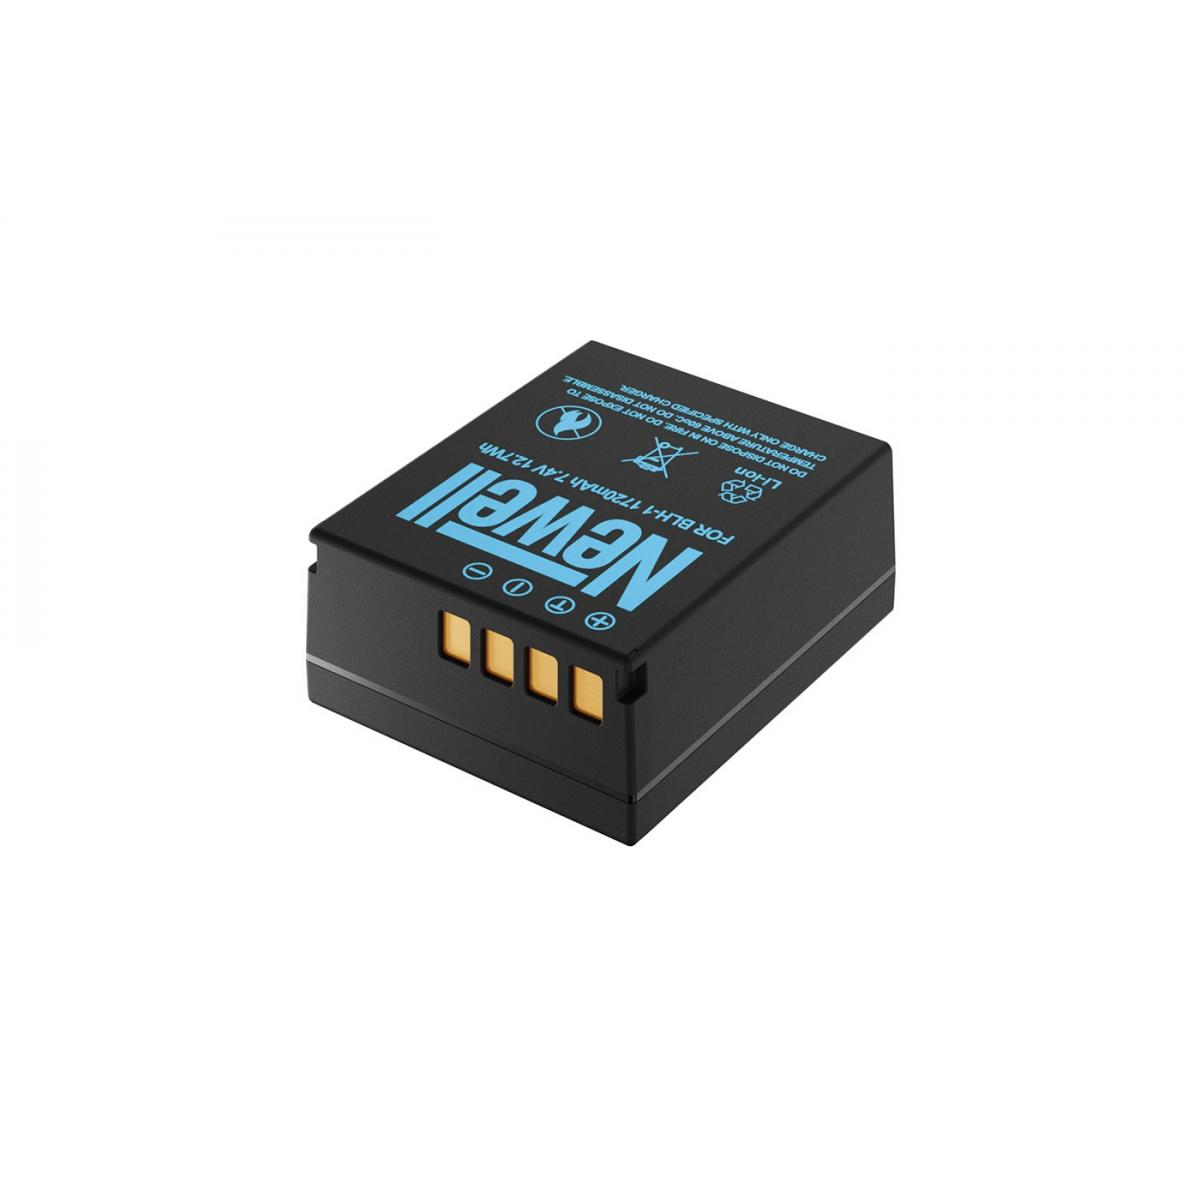 Newell battery replacement for BLH-1